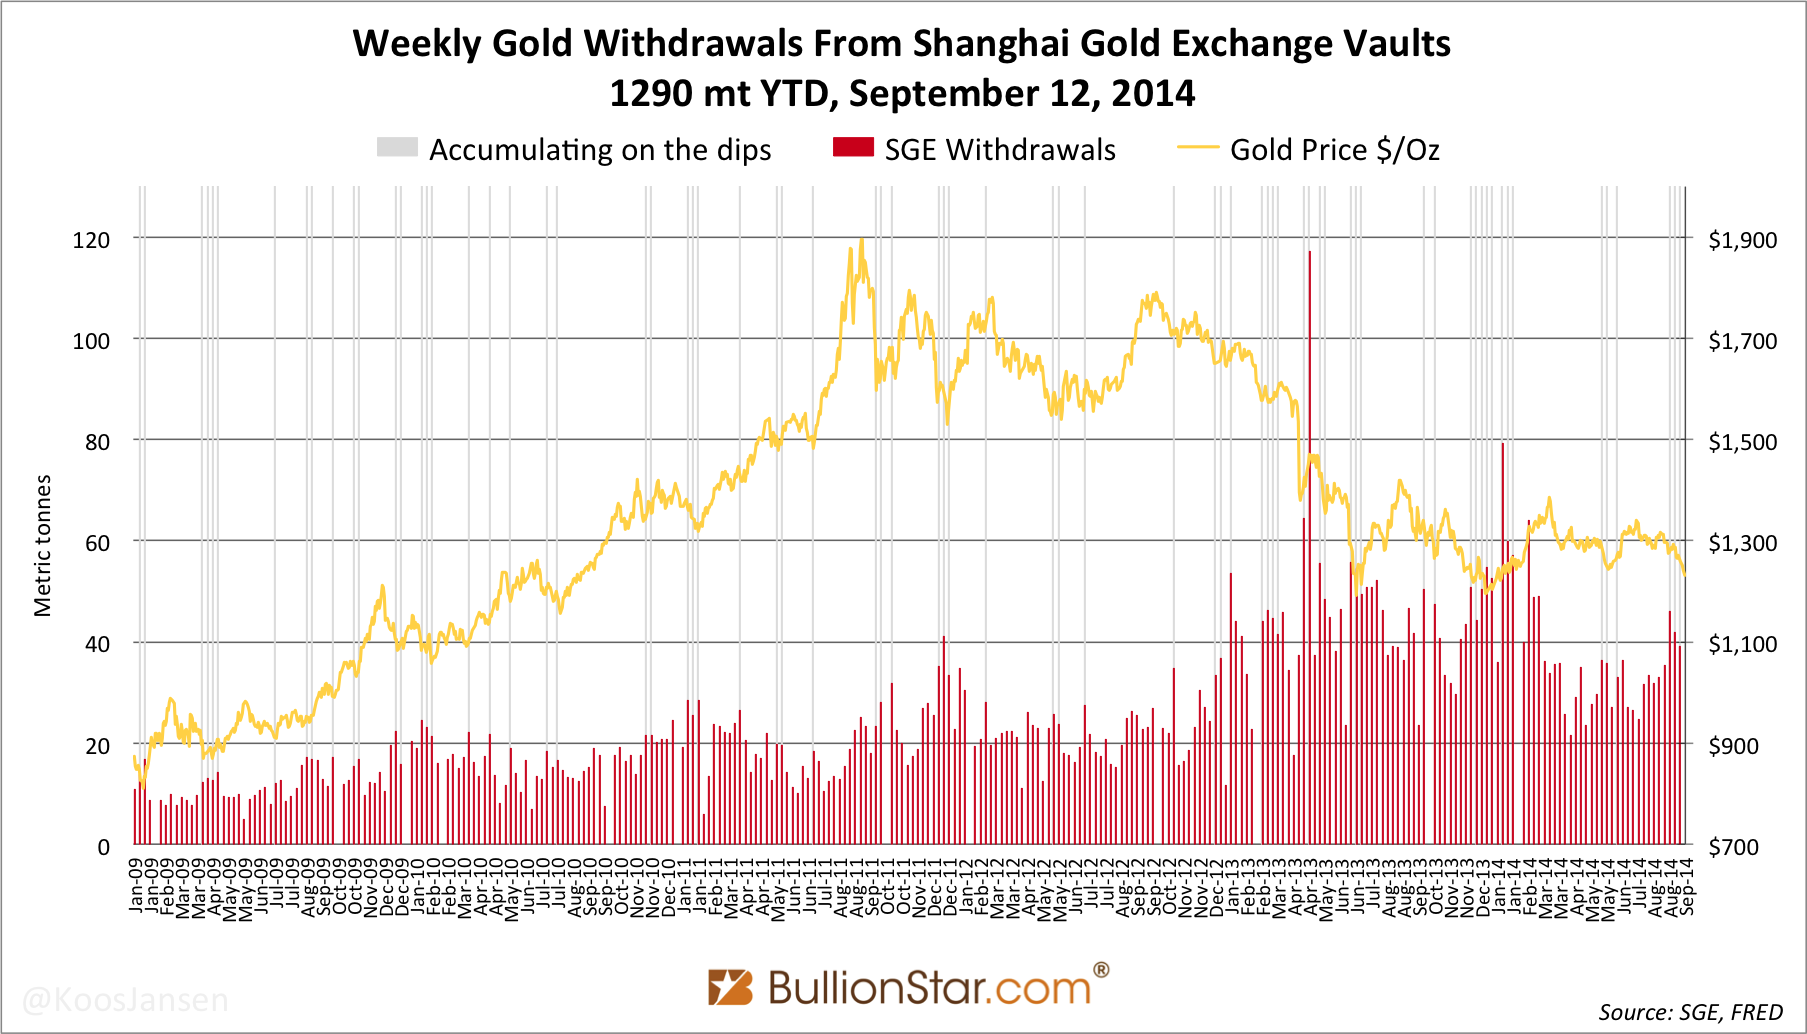 Chinese Gold Demand 39t In Week 36, YTD 1290t